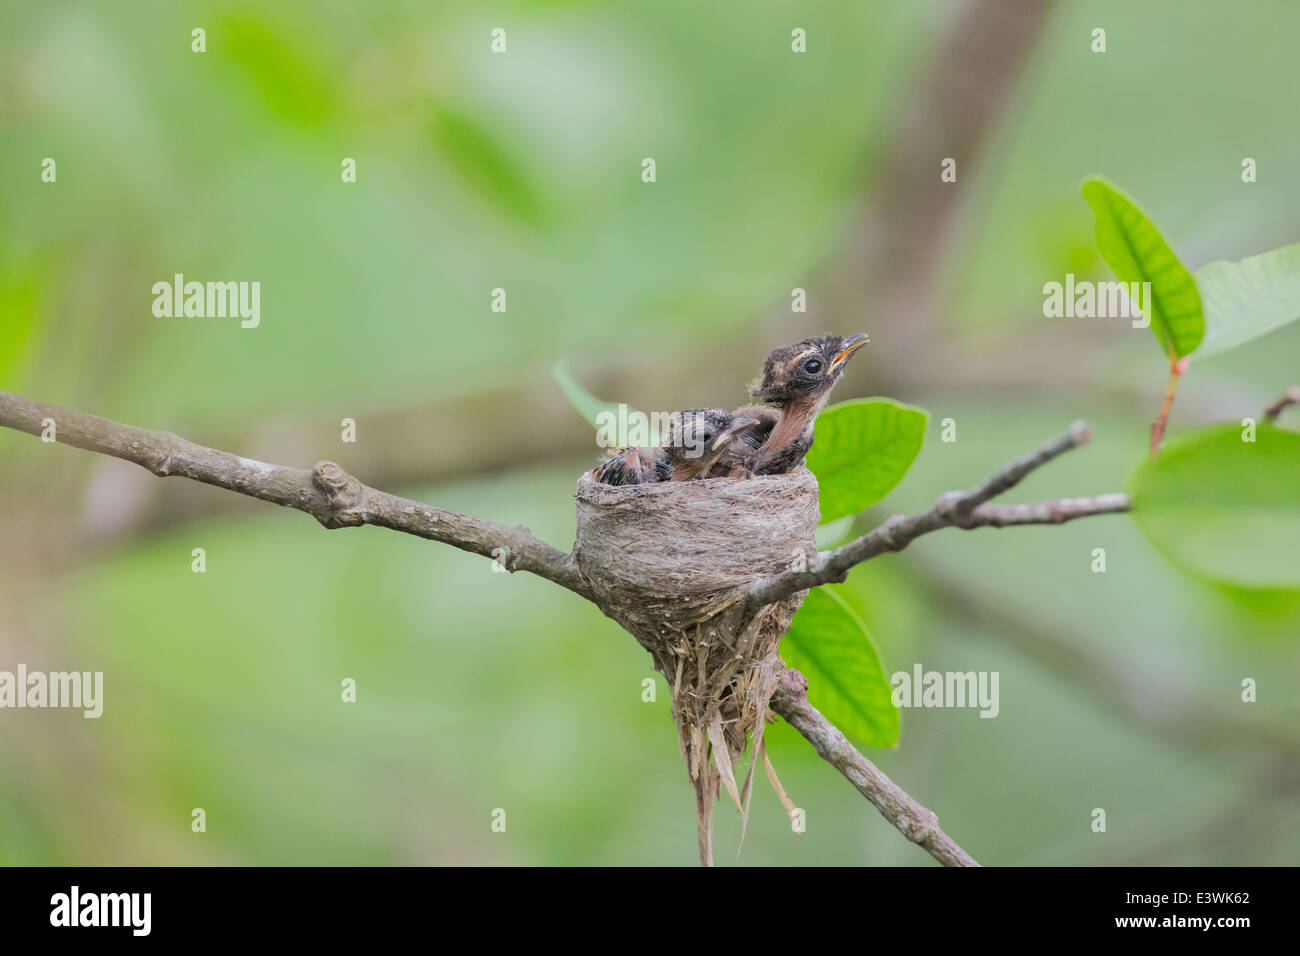 Pied fantail bird nesting with chicks, resting, feeding. - Stock Image